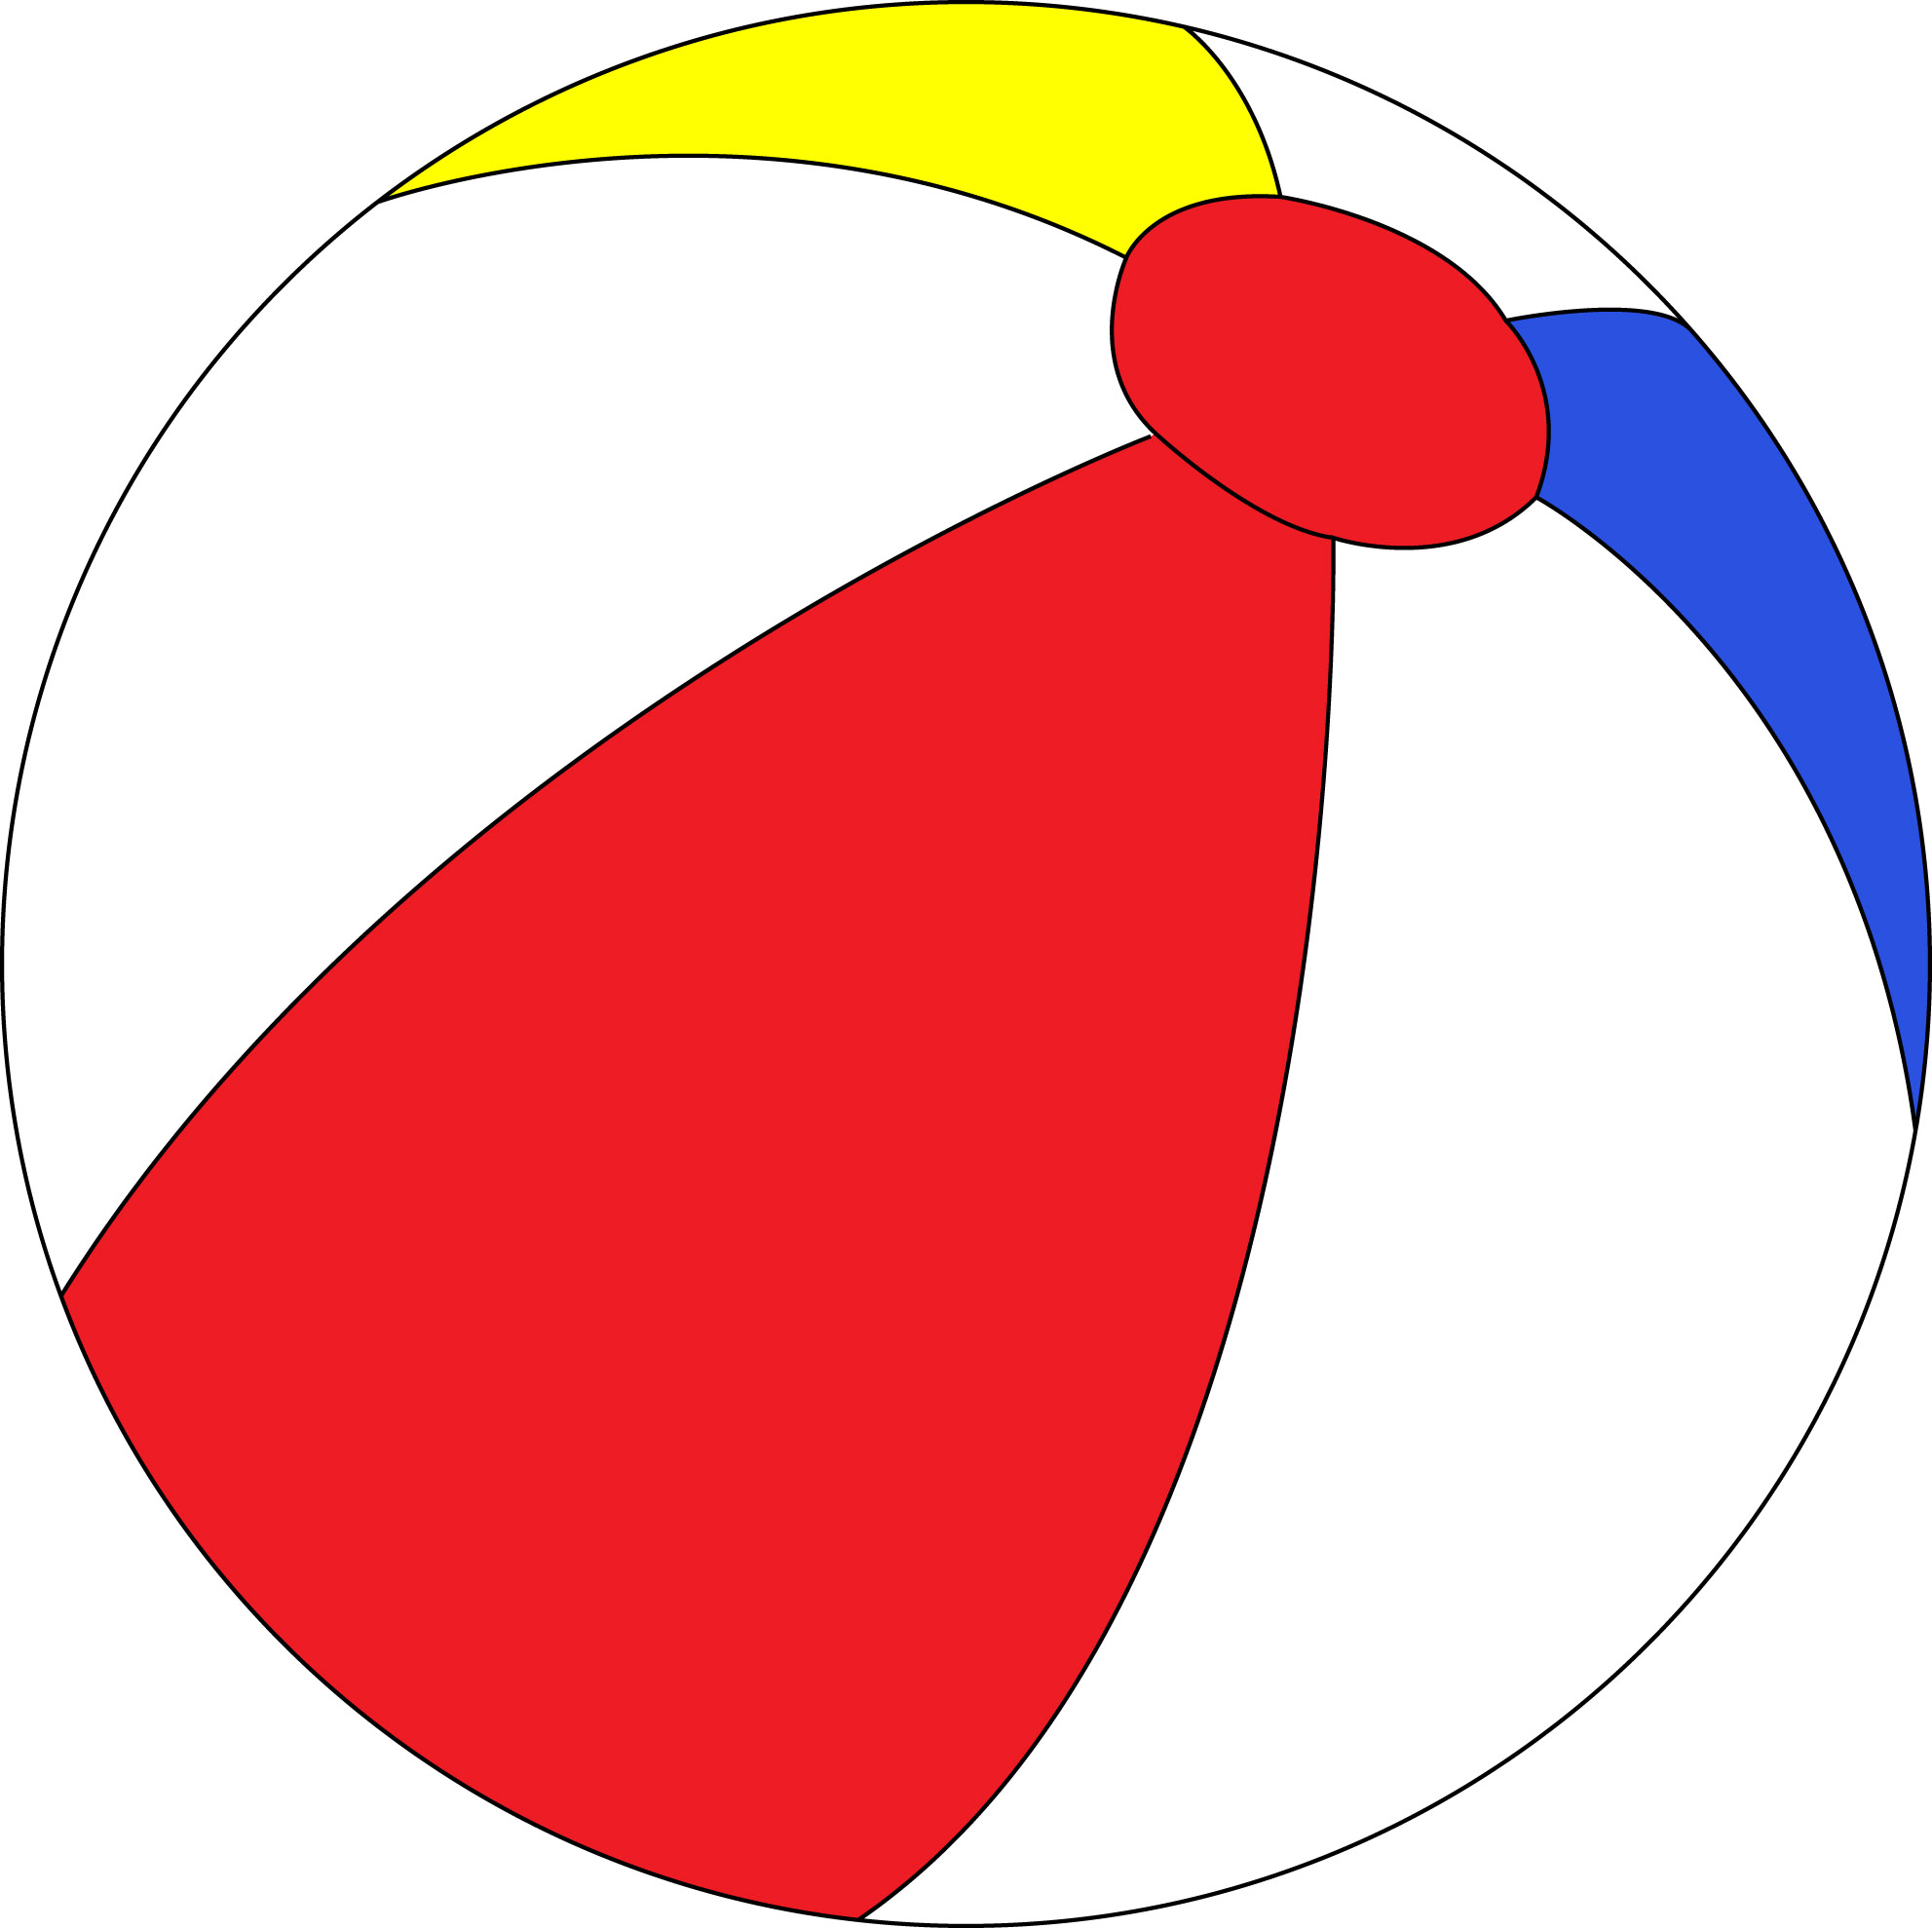 Free beach ball clipart free clip art images 2 image 1 clipartix 4.